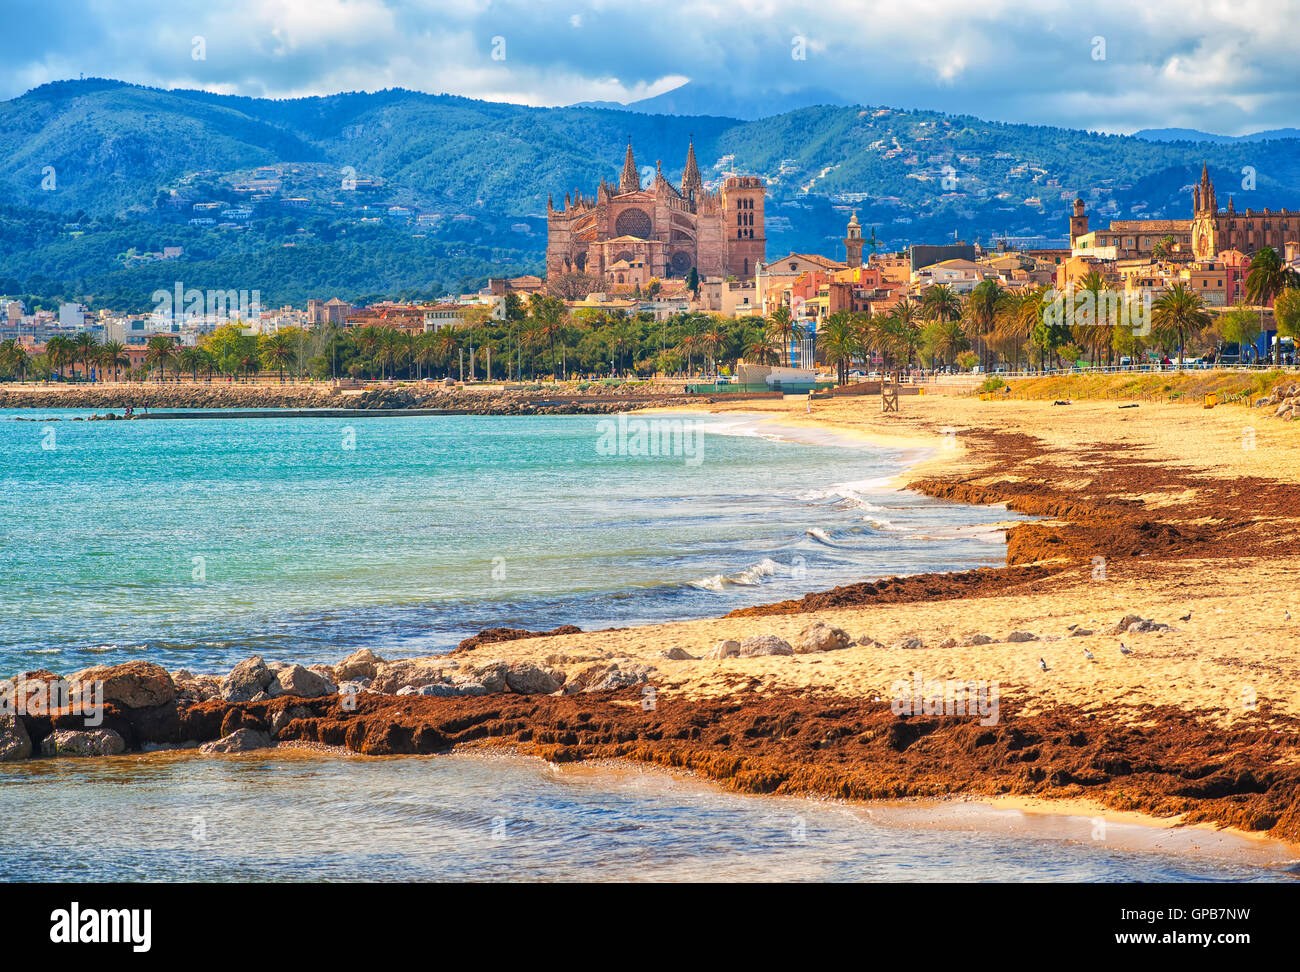 Sand beach in Palma de Mallorca, gothic cathedral La Seu in background, Spain - Stock Image